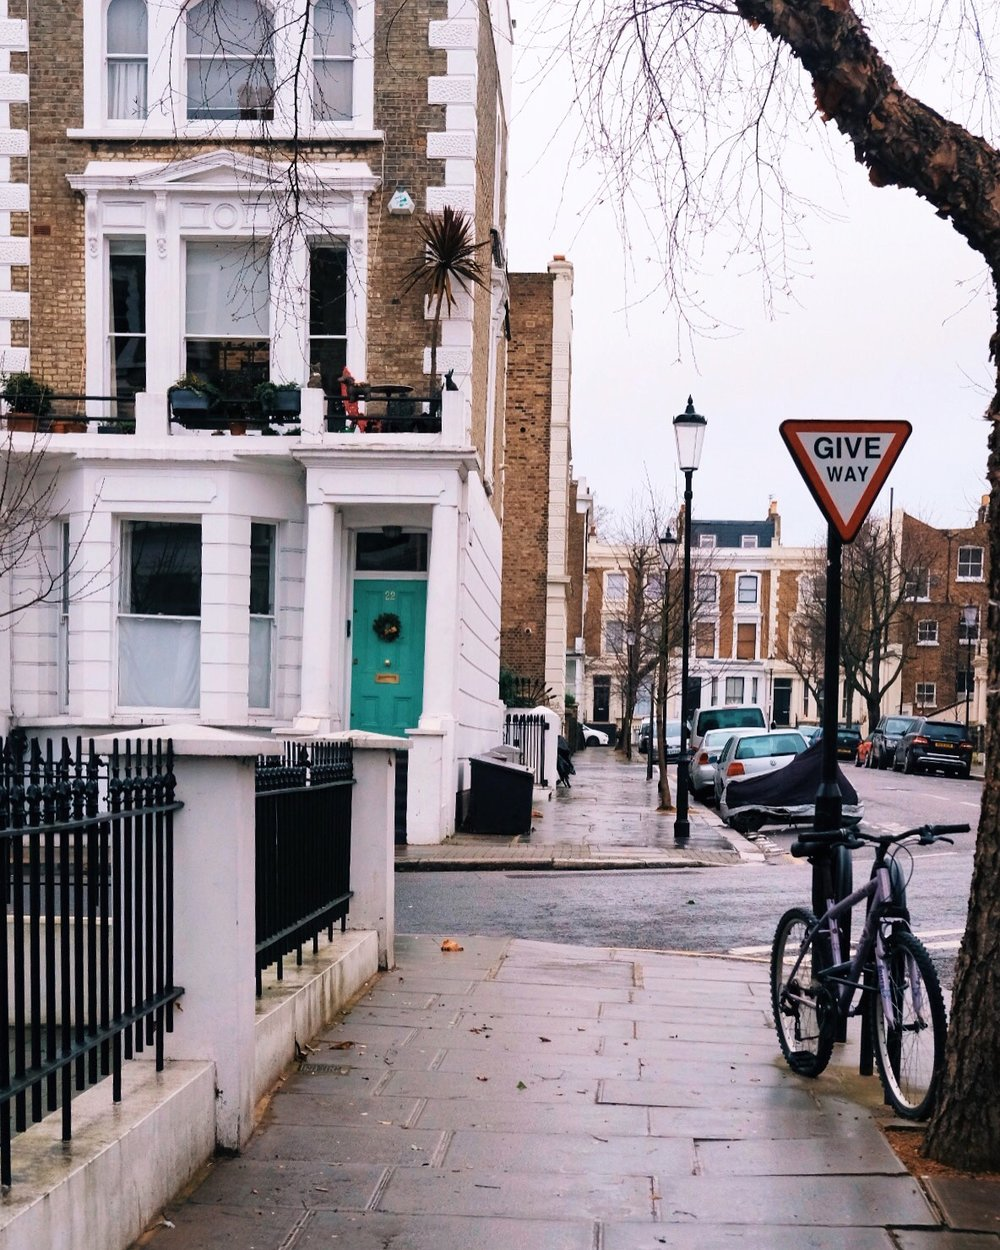 "<p style=""font-family:brandon-grotesque;font-weight:500; font-size:11px; text-center:left; color:light grey;letter-spacing: 1px"">JANUARY 114, 2018 • GOODBYE NOTTING HILL • 📍London, UK 🇬🇧</p>"